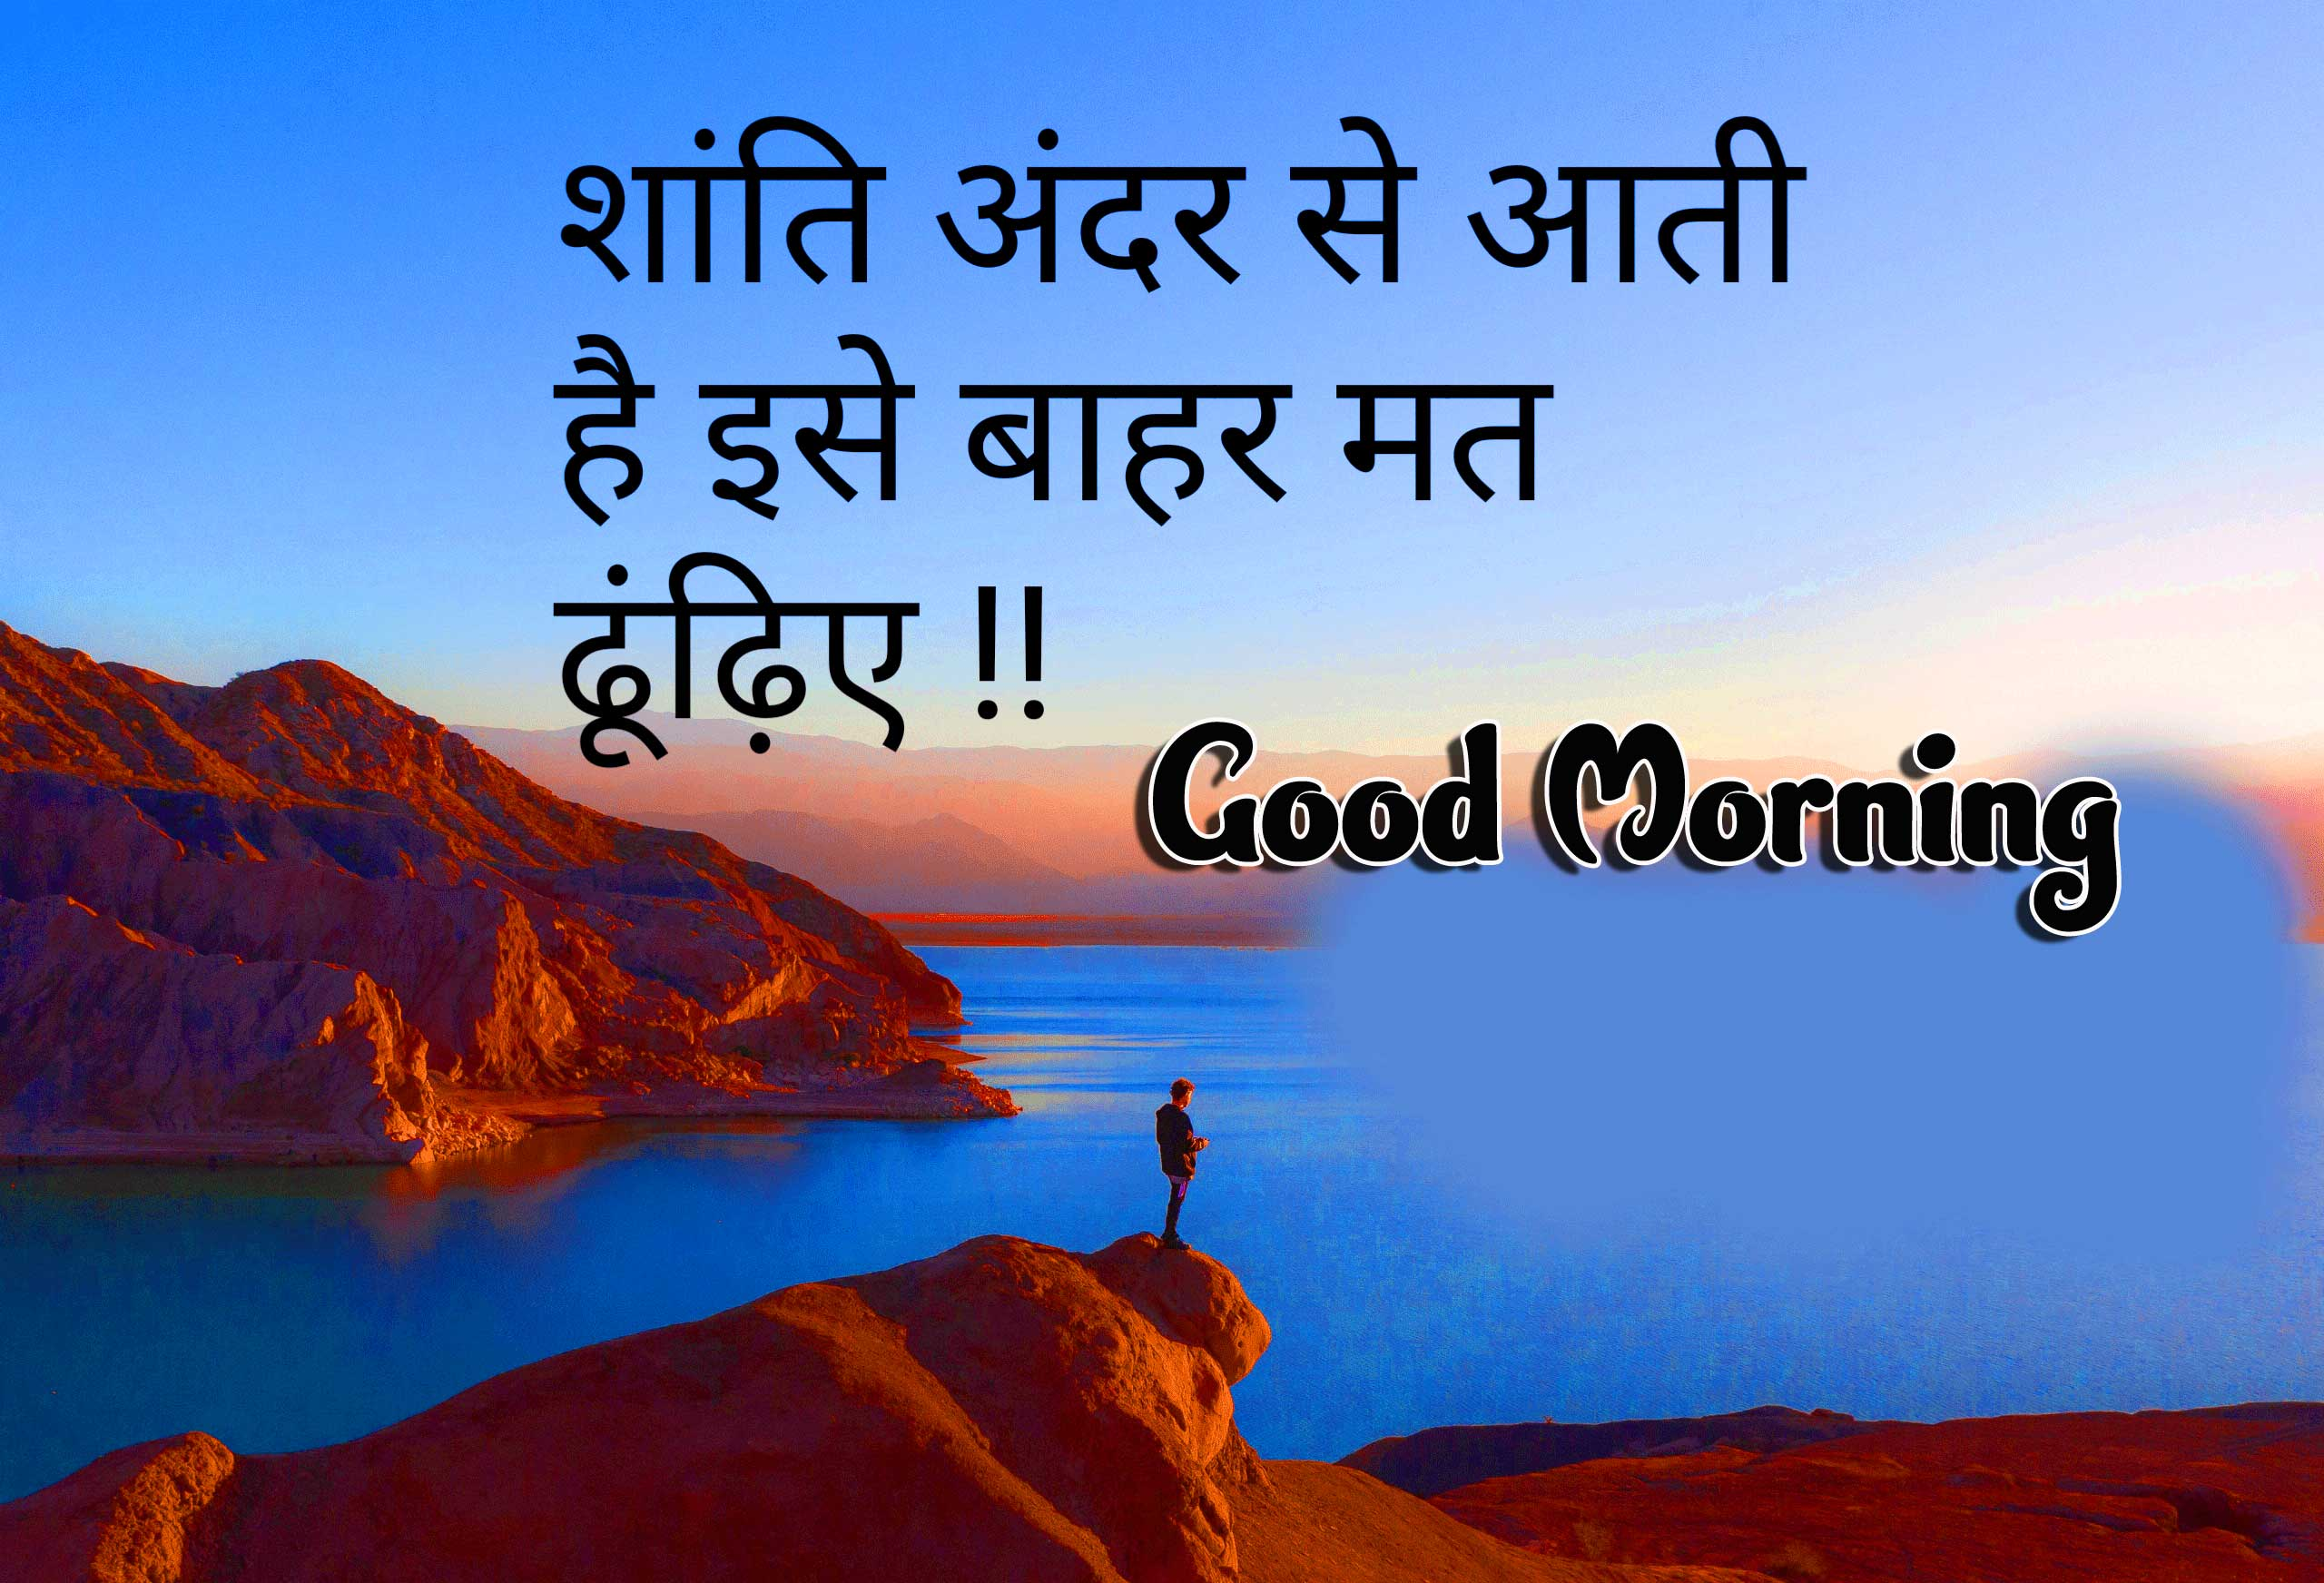 Hindi Quotes Shayari Good Morning Images 54